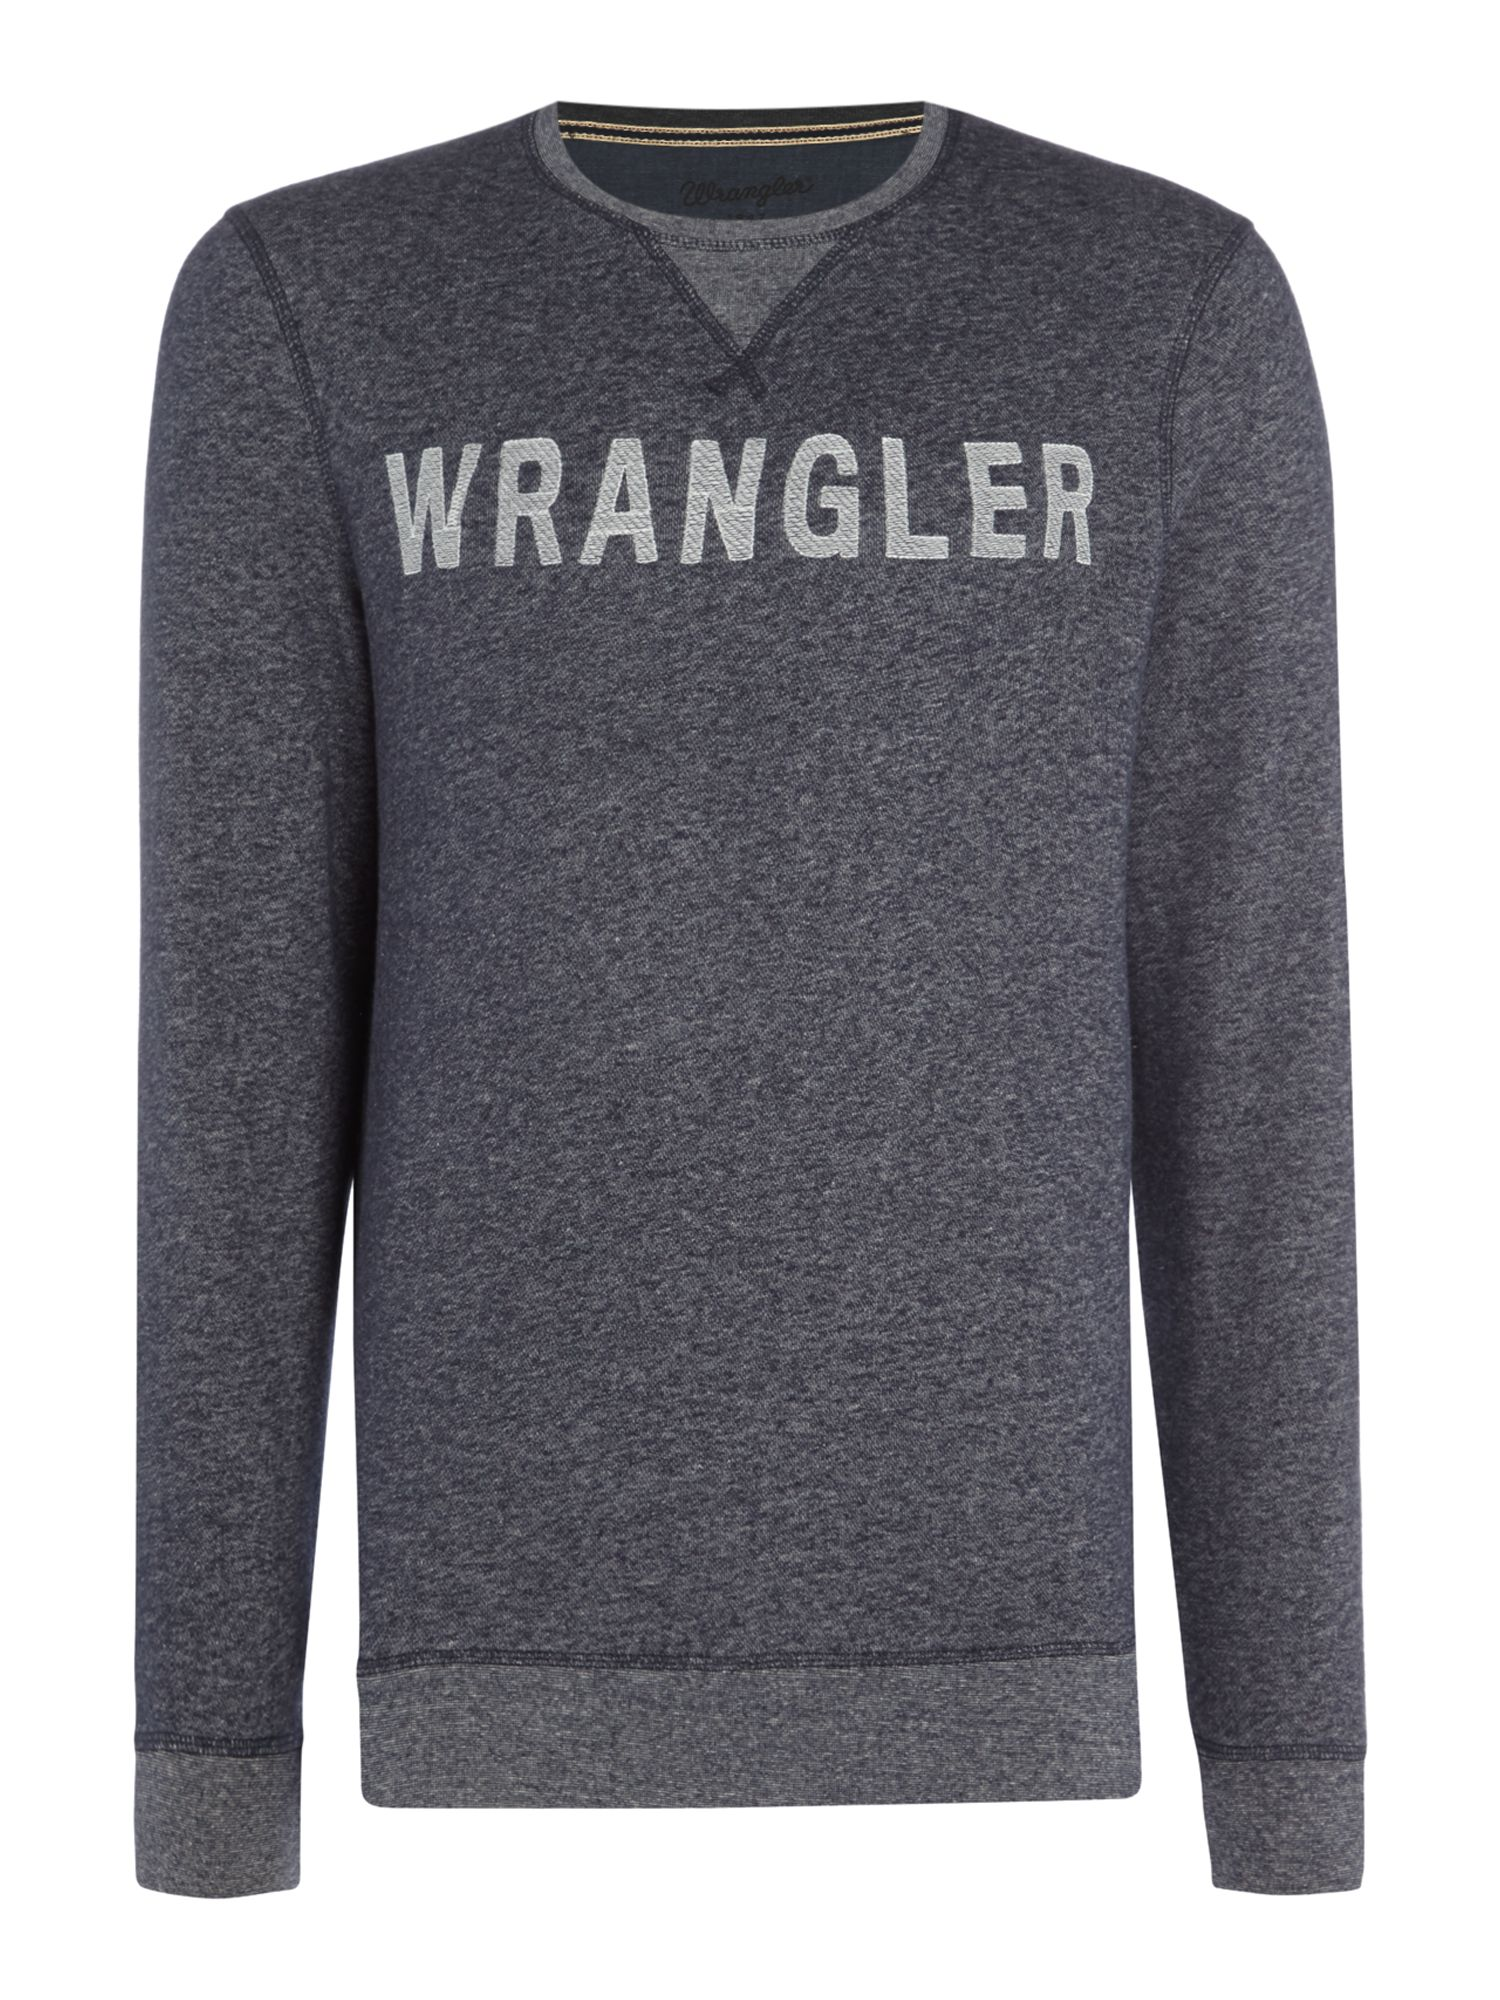 Men's Wrangler Long sleeve crew neck logo sweatshirt, Blue